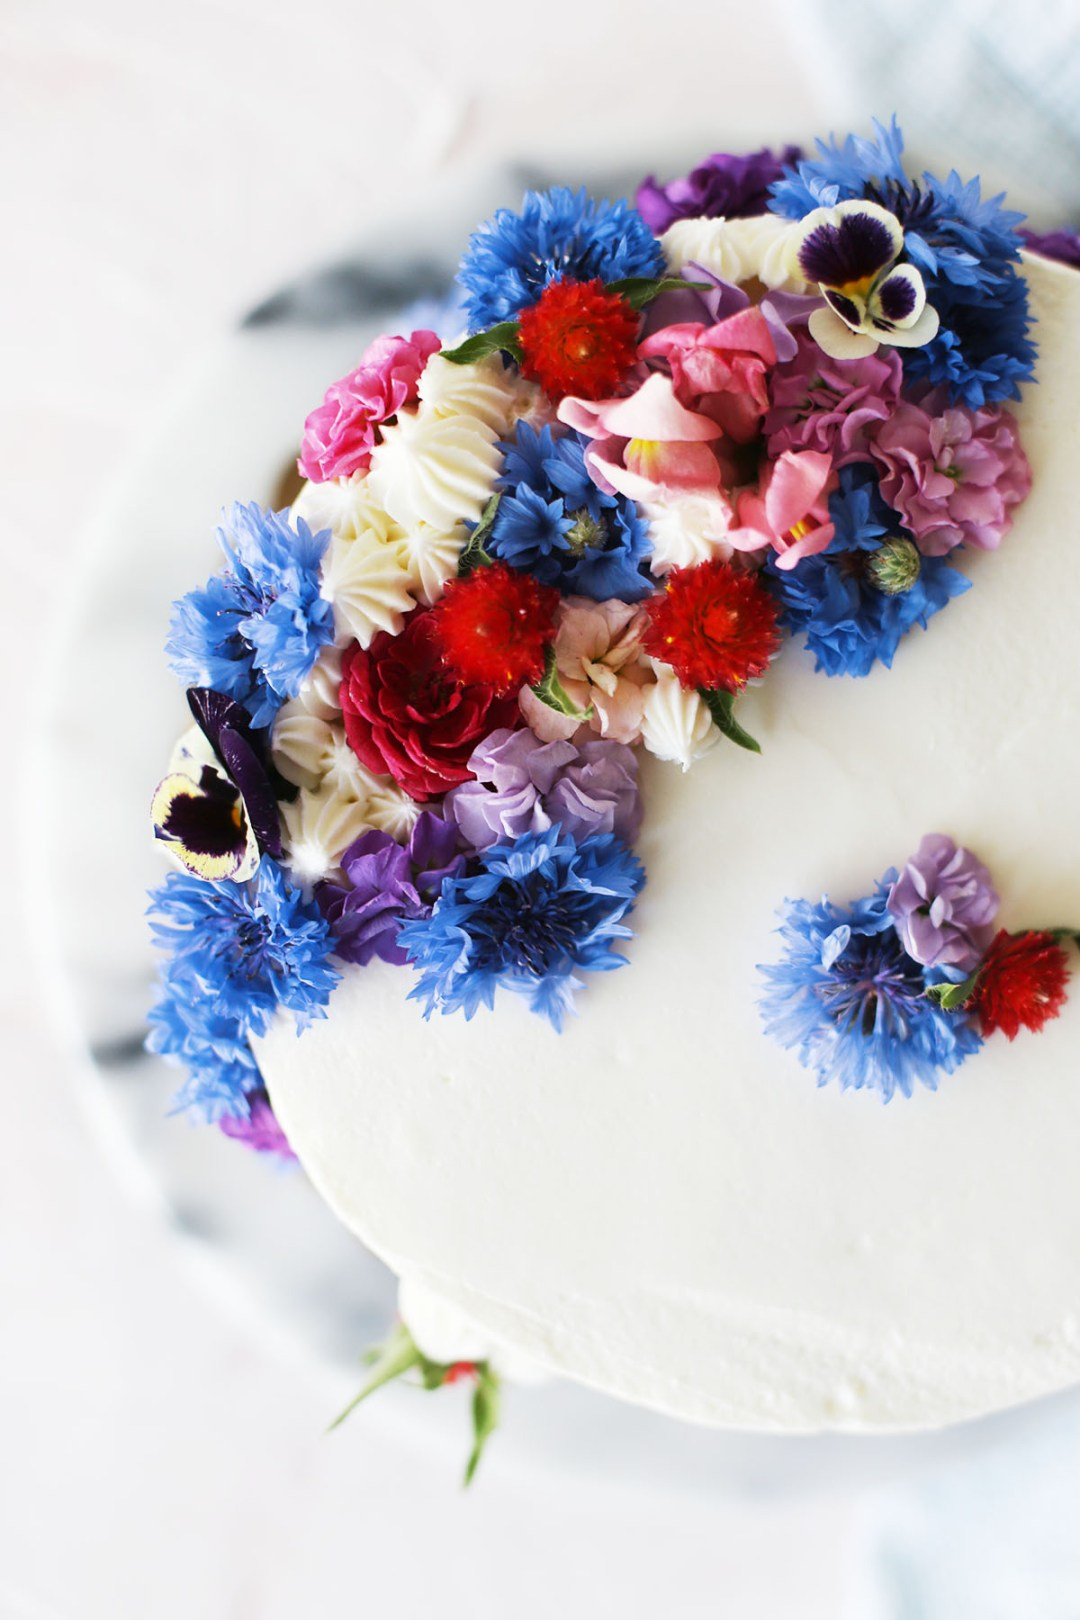 How to Decorate a Cake with Flowers